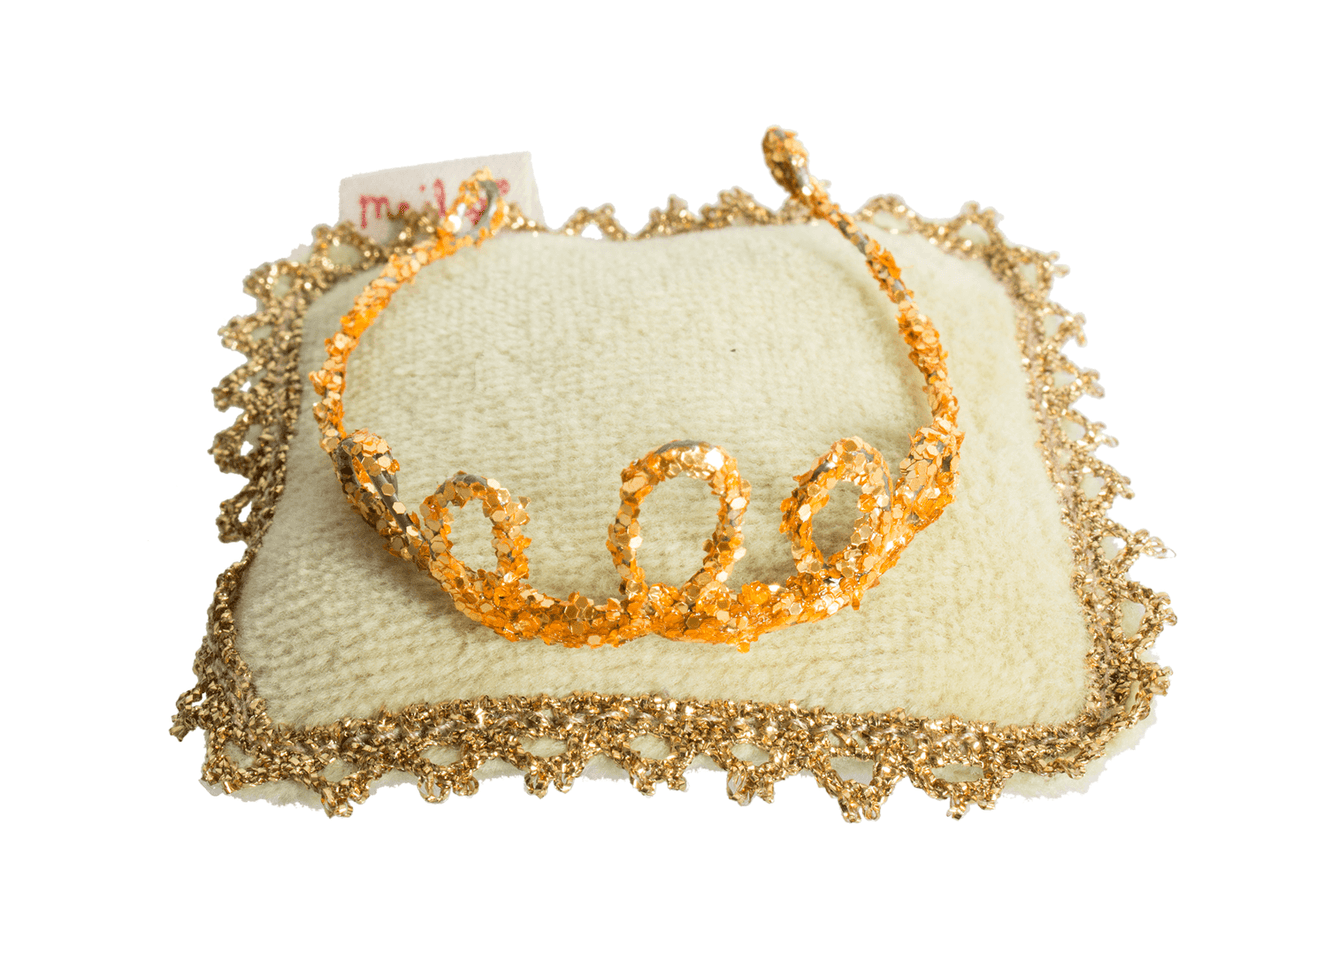 Mini Gold Crown & Pillow